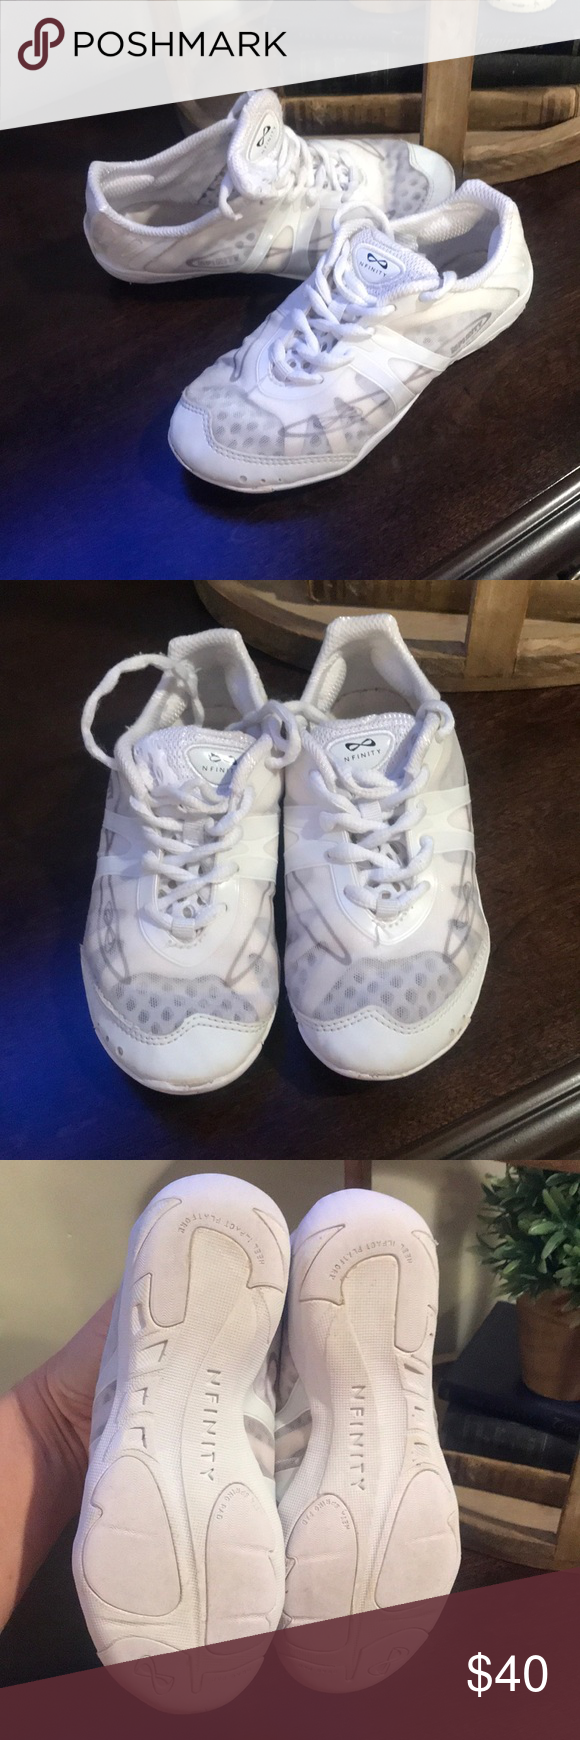 Nfinity Vengeance Cheer Shoes Nfinity Shoes Girls Shoes